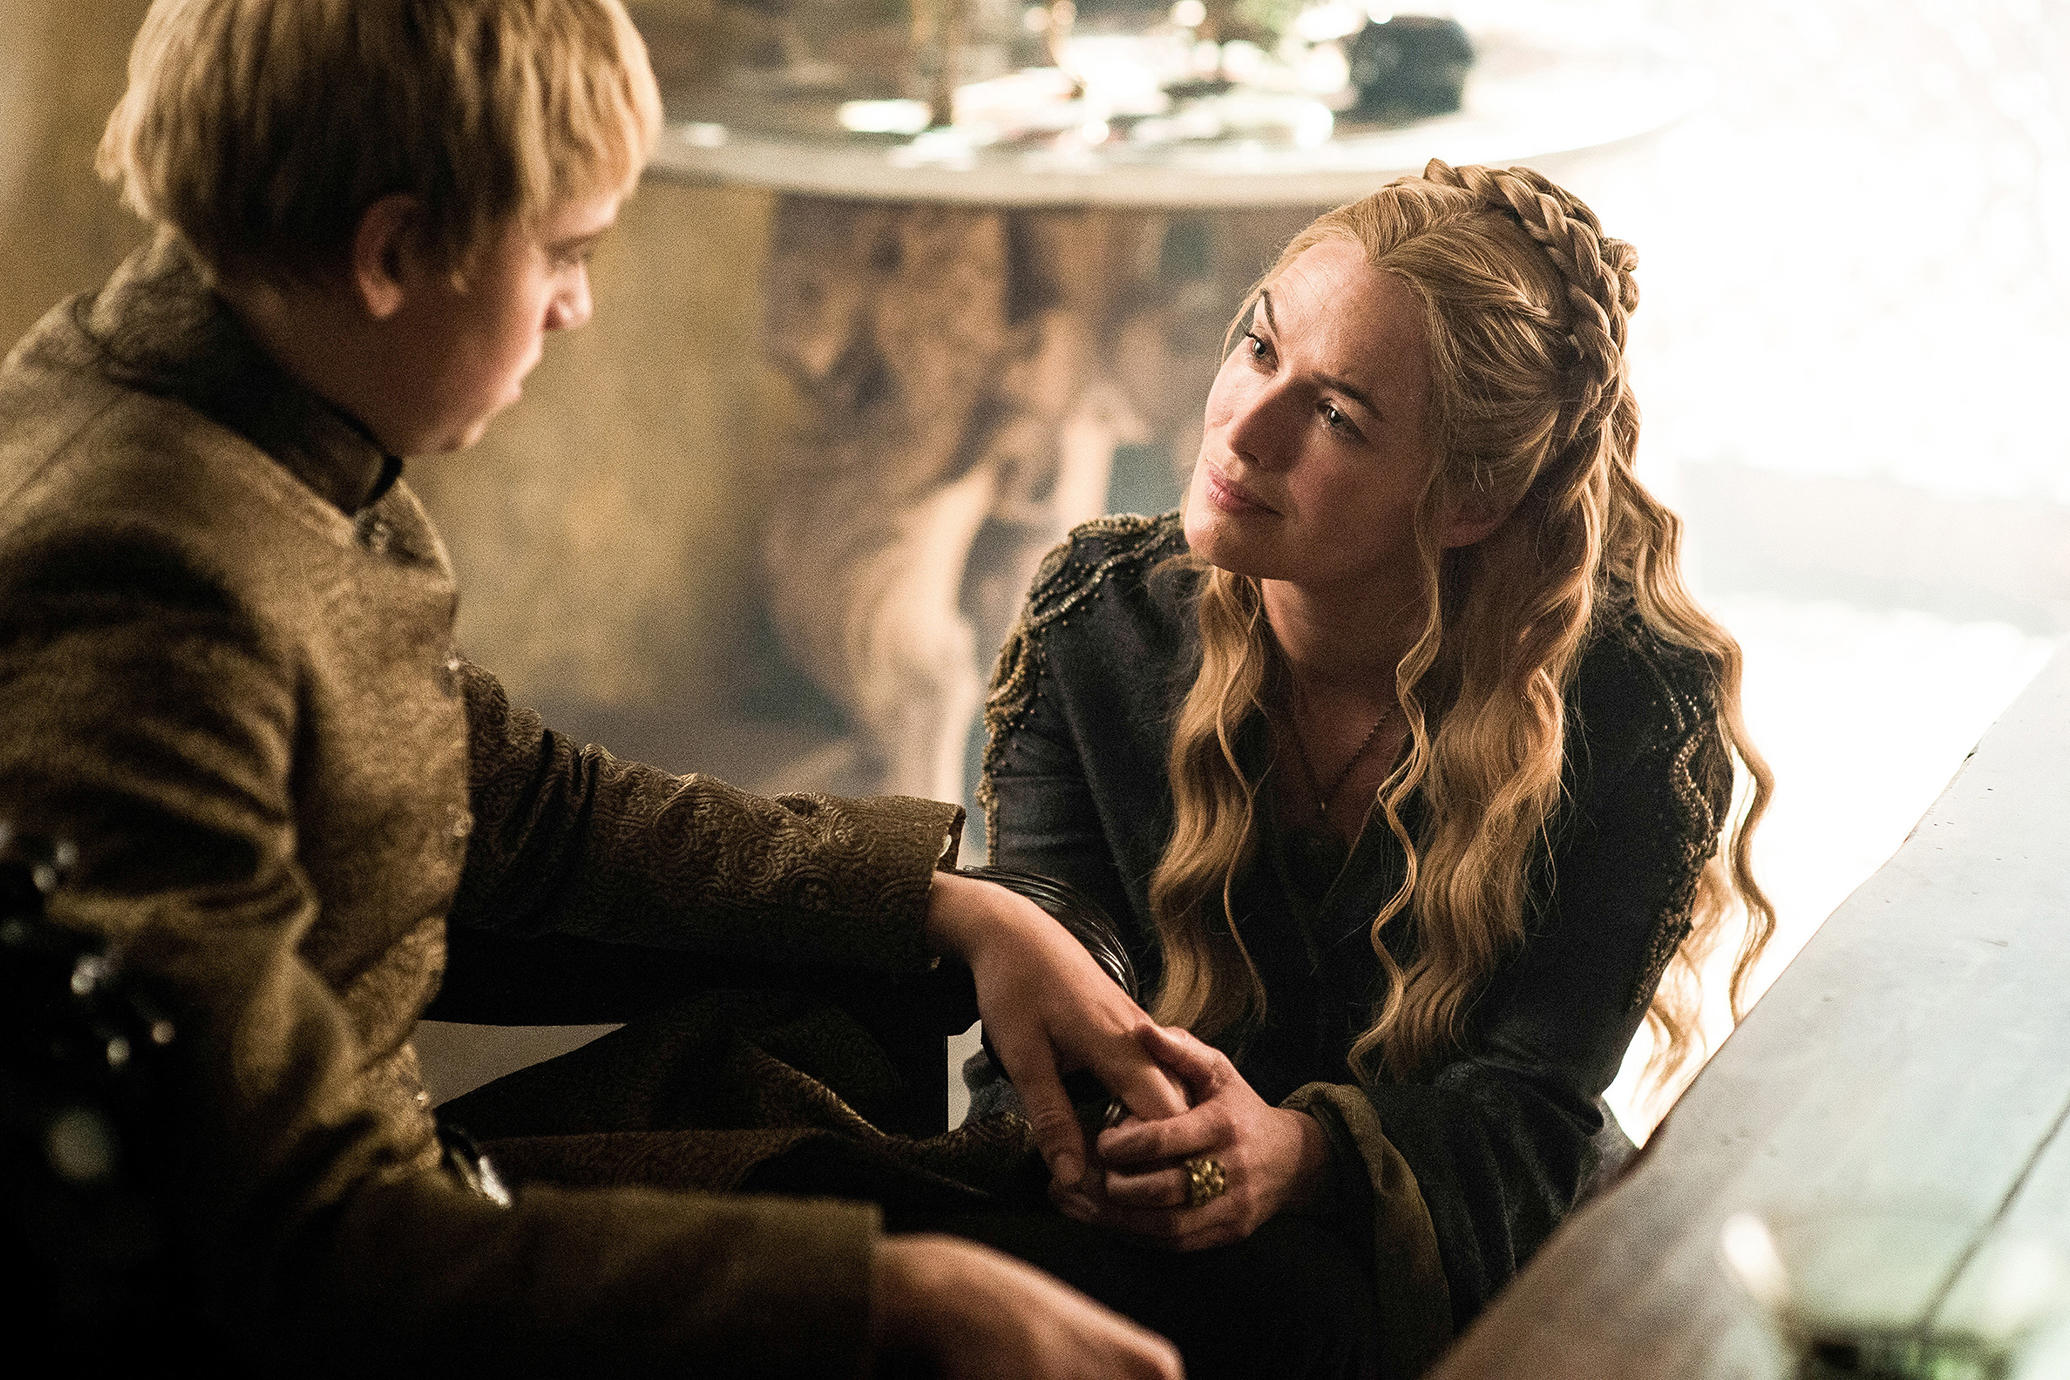 Is This How Jaime is Going to Kill Cersei on Game of Thrones?